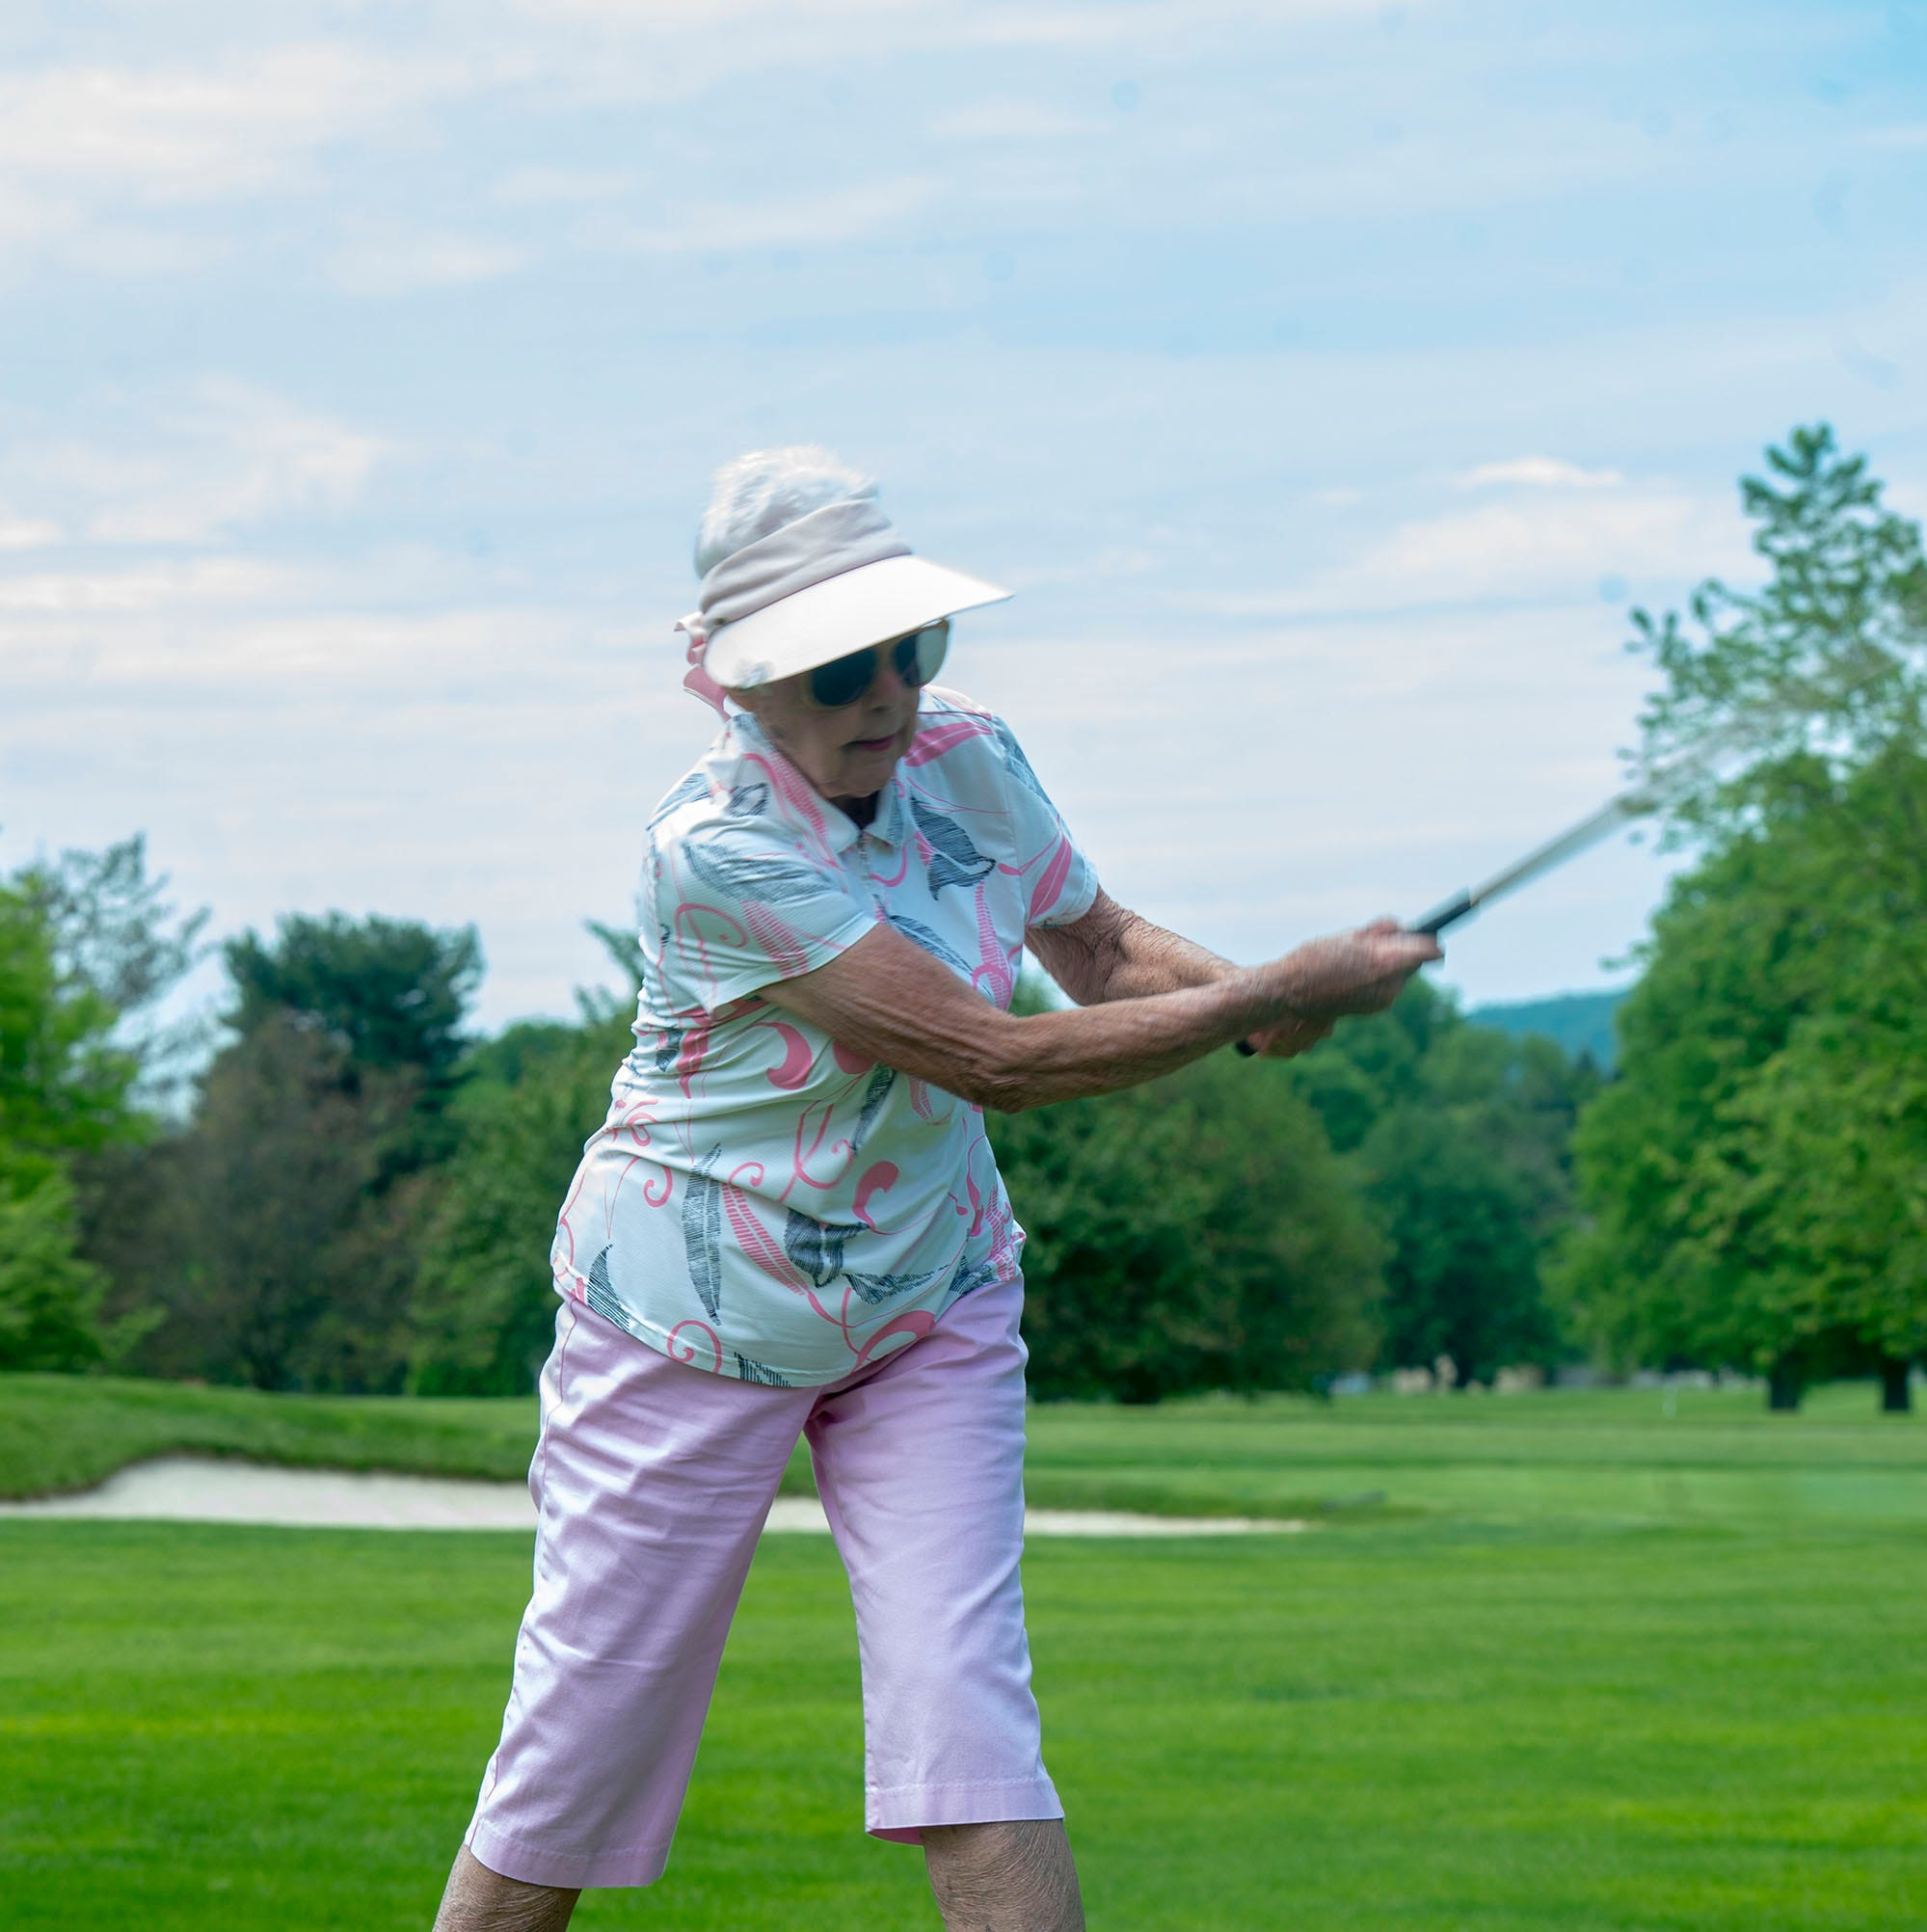 Woman celebrates 90th birthday on golf course